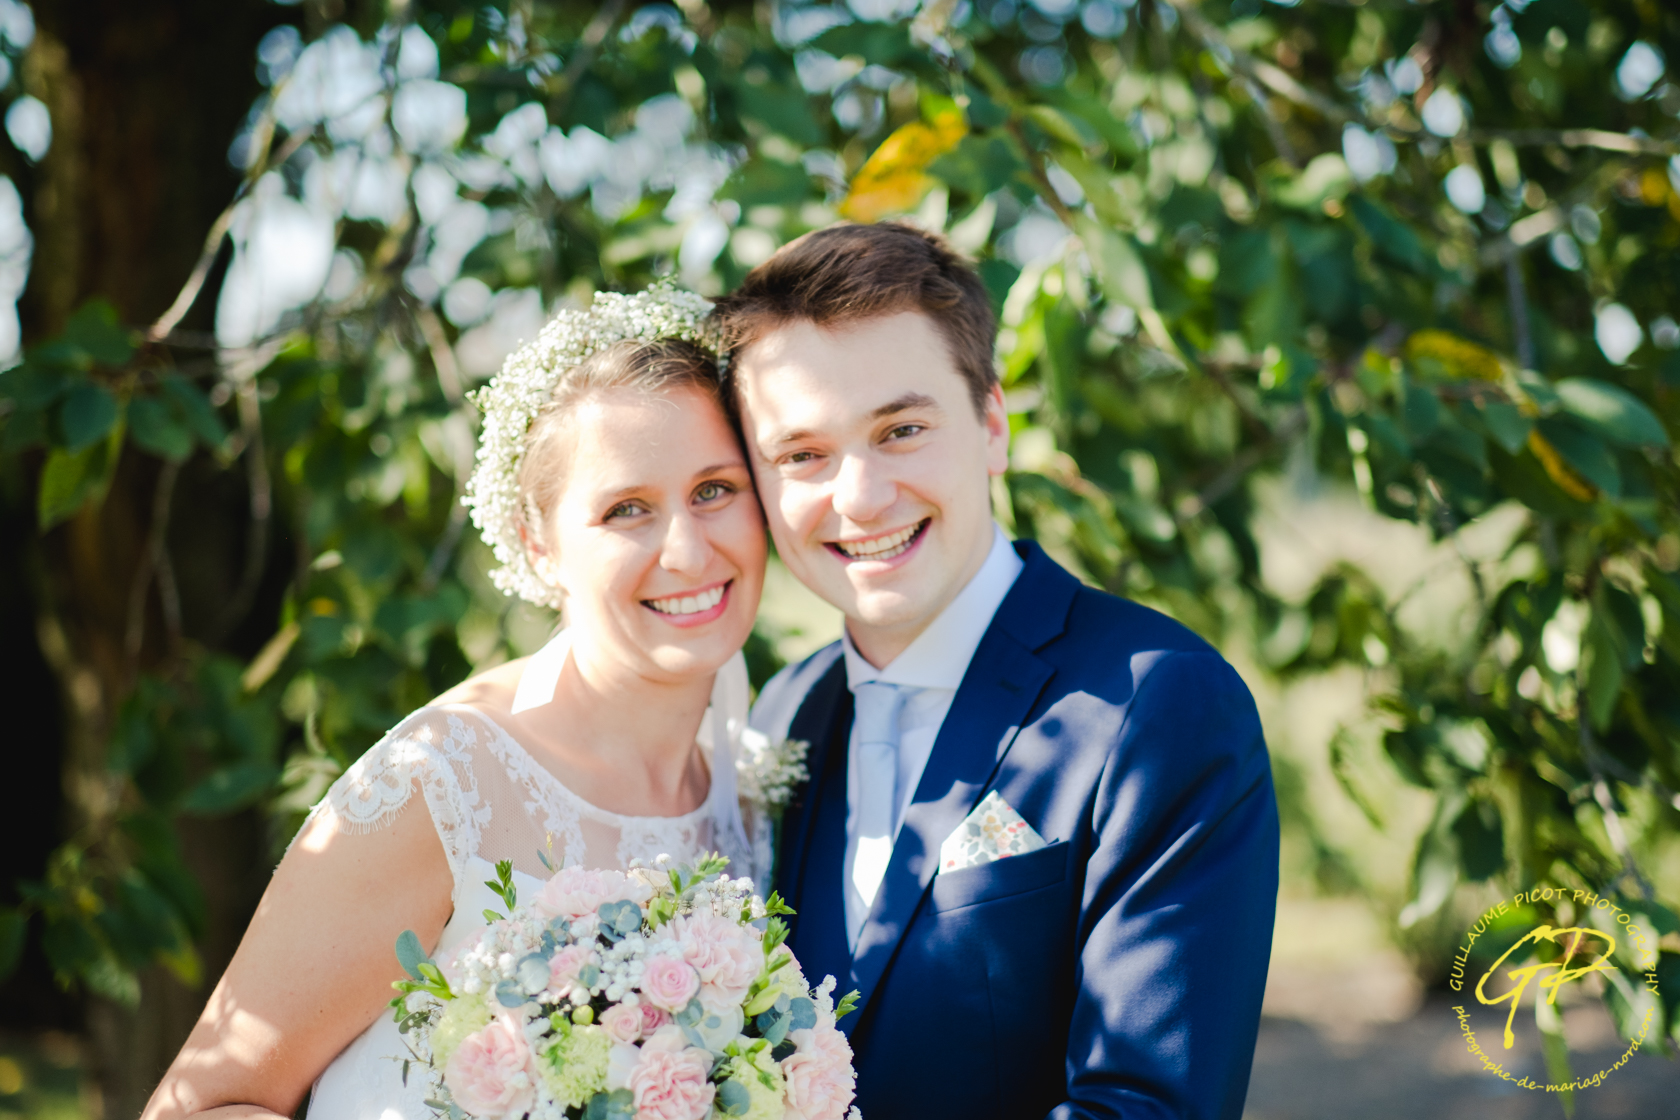 mariage-claire-fontaine-wicres-12-sur-151